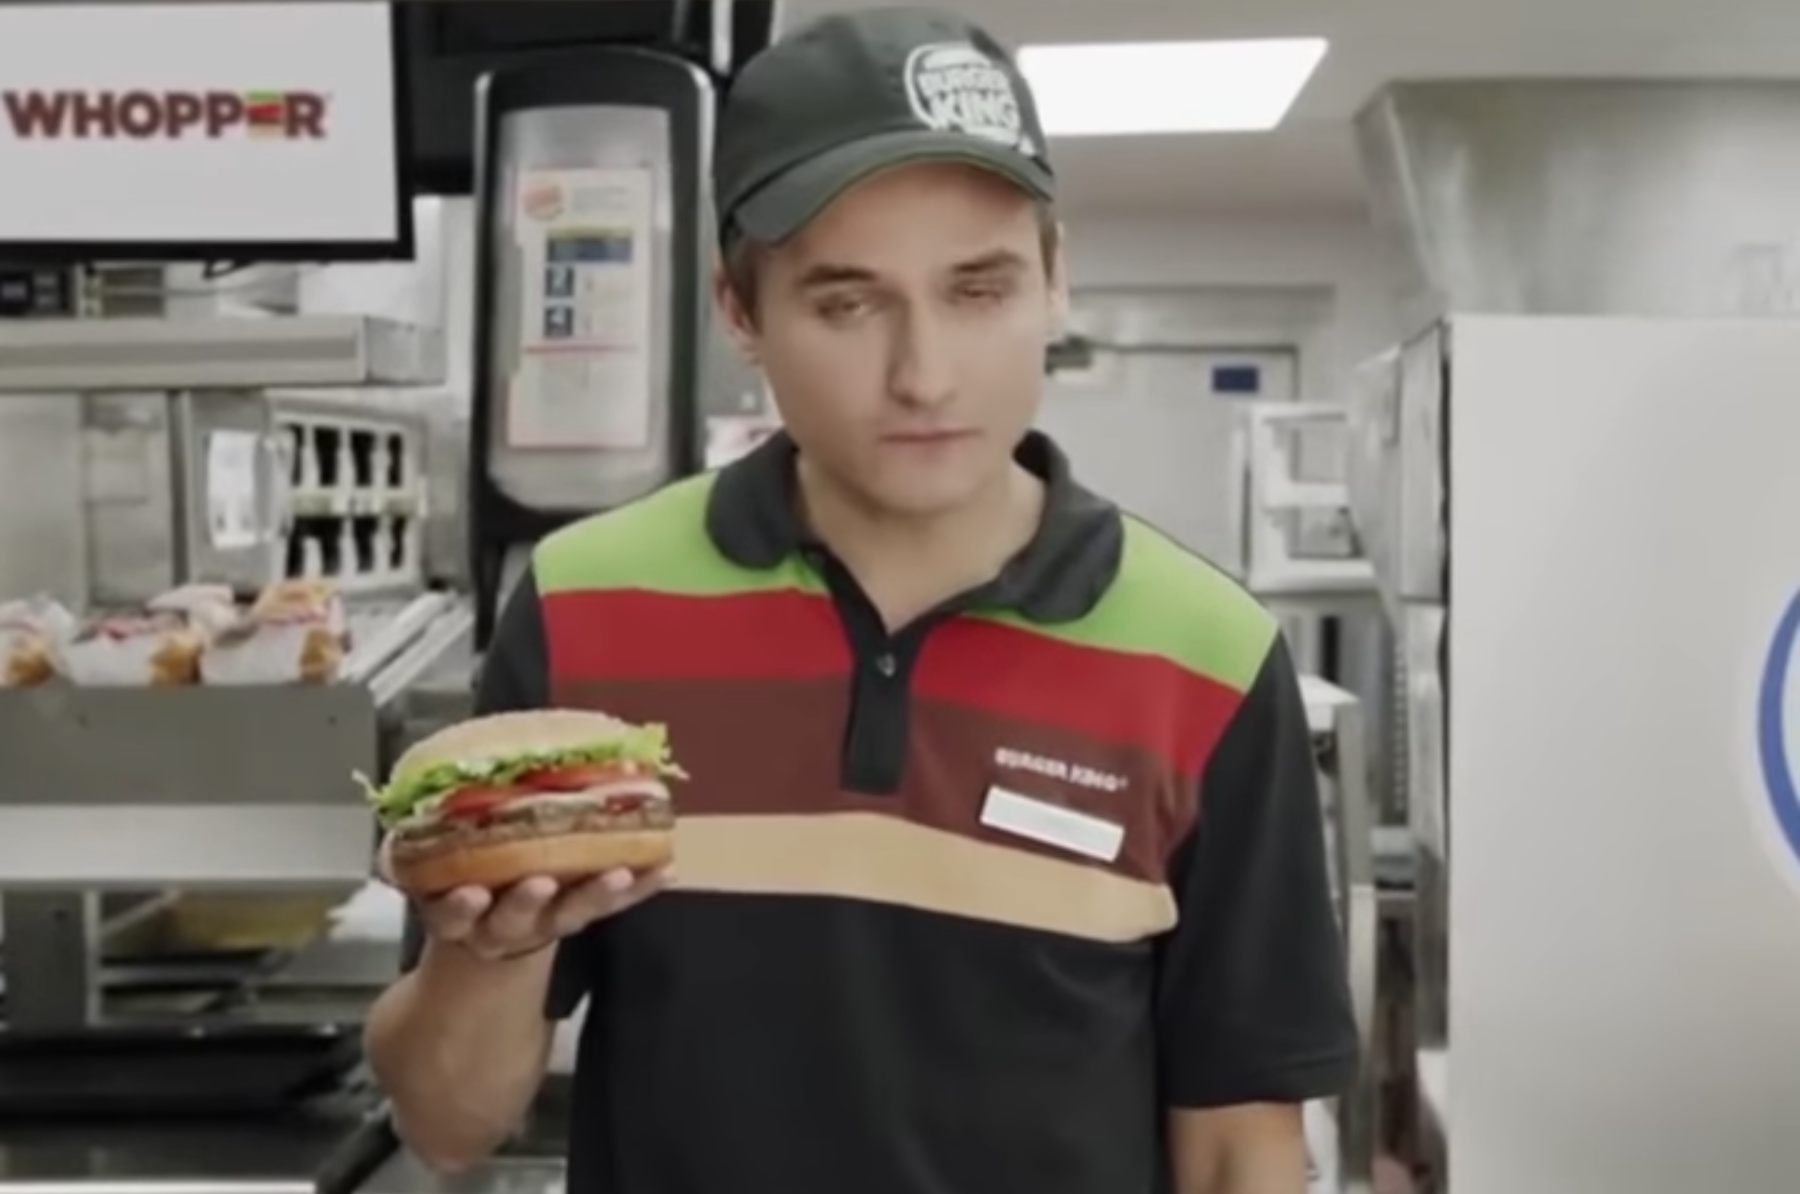 Burger King Whopper voice ad